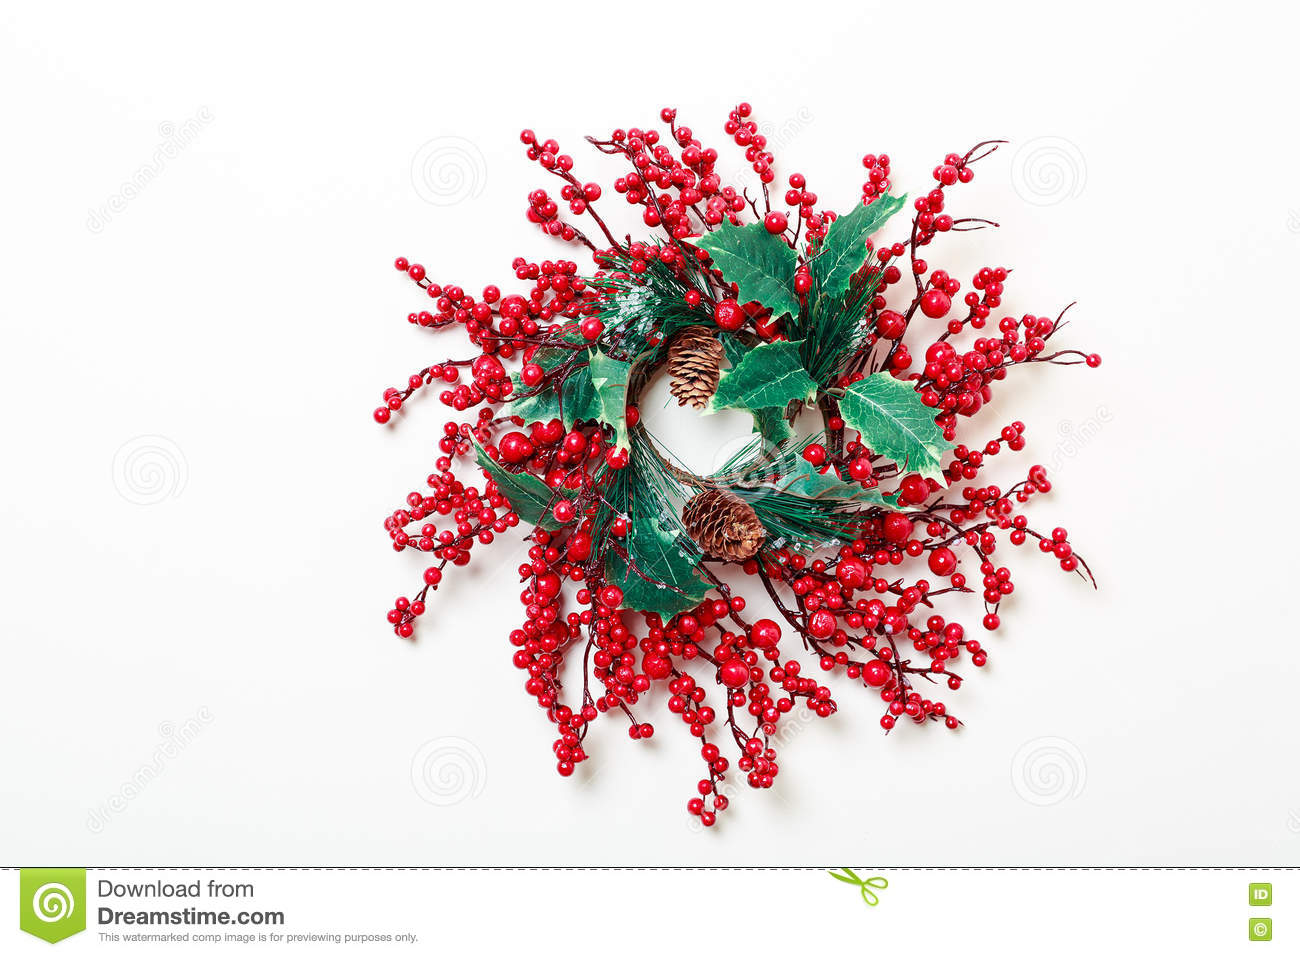 Christmas wreath of holly berries and evergreen isolated on white background